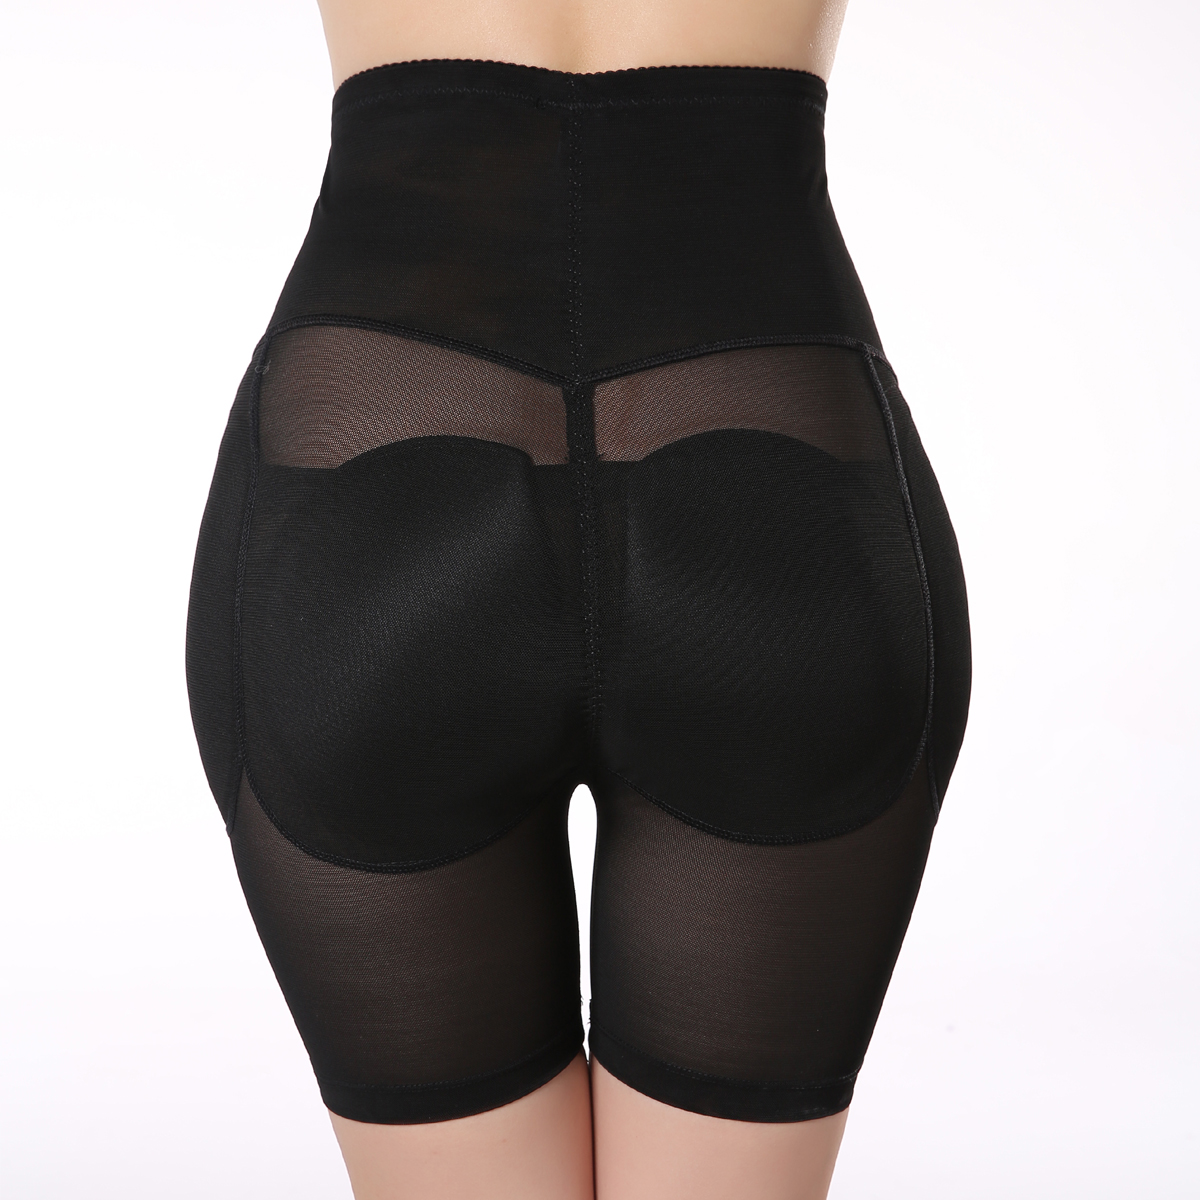 wholesale high waist butt lifter padded panties  body shaper butt lifter plus size